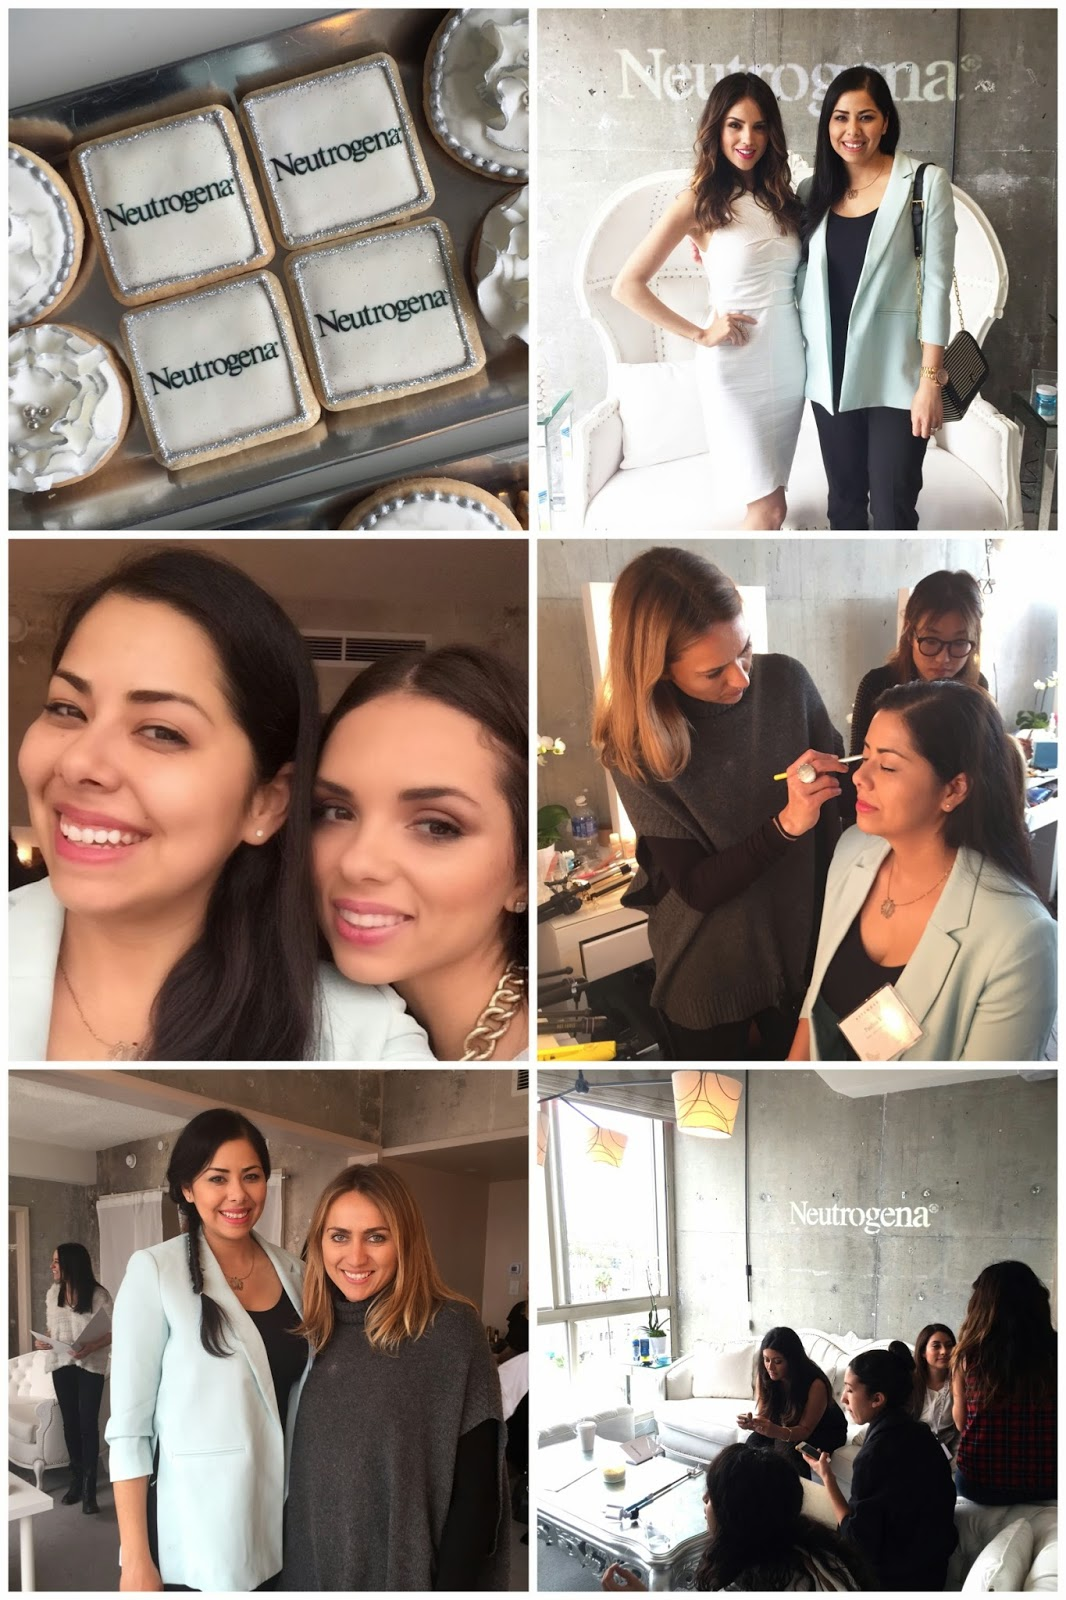 Neutrogena Glam Suite, We All Grow Neutrogena Glam Suite, Neutrogena Eiza Gonzalez, Eiza Gonzalez